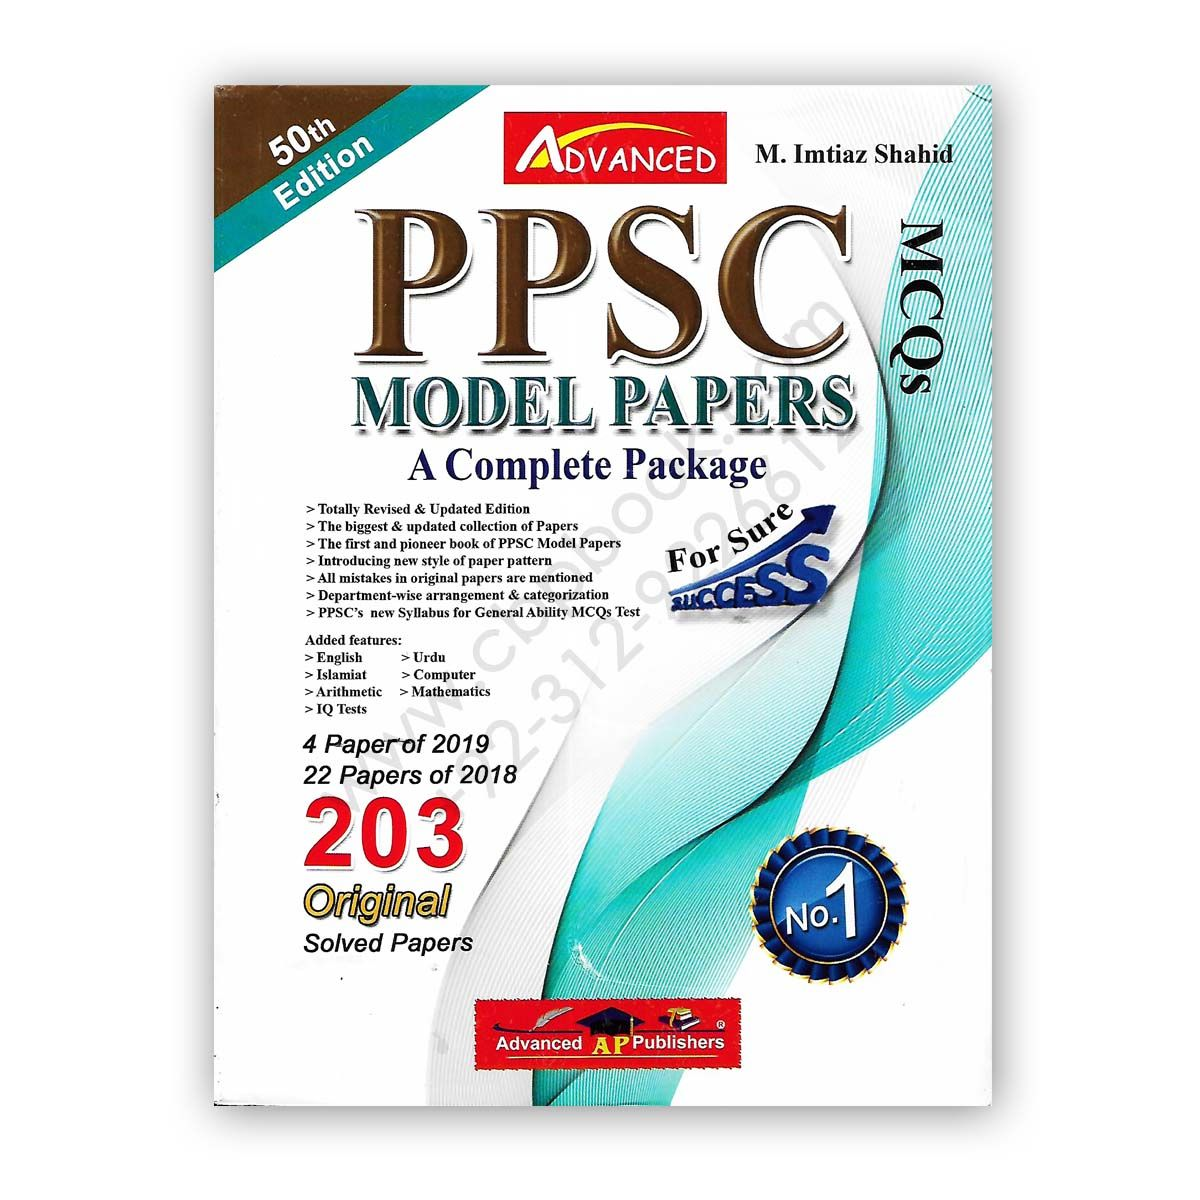 Advanced Ppsc Model Papers Original Solved Papers 2021 By M Imtiaz Shahid Cbpbook Pakistan S Largest Online Book Store Pdf Books Download Free Pdf Books Free Books Download